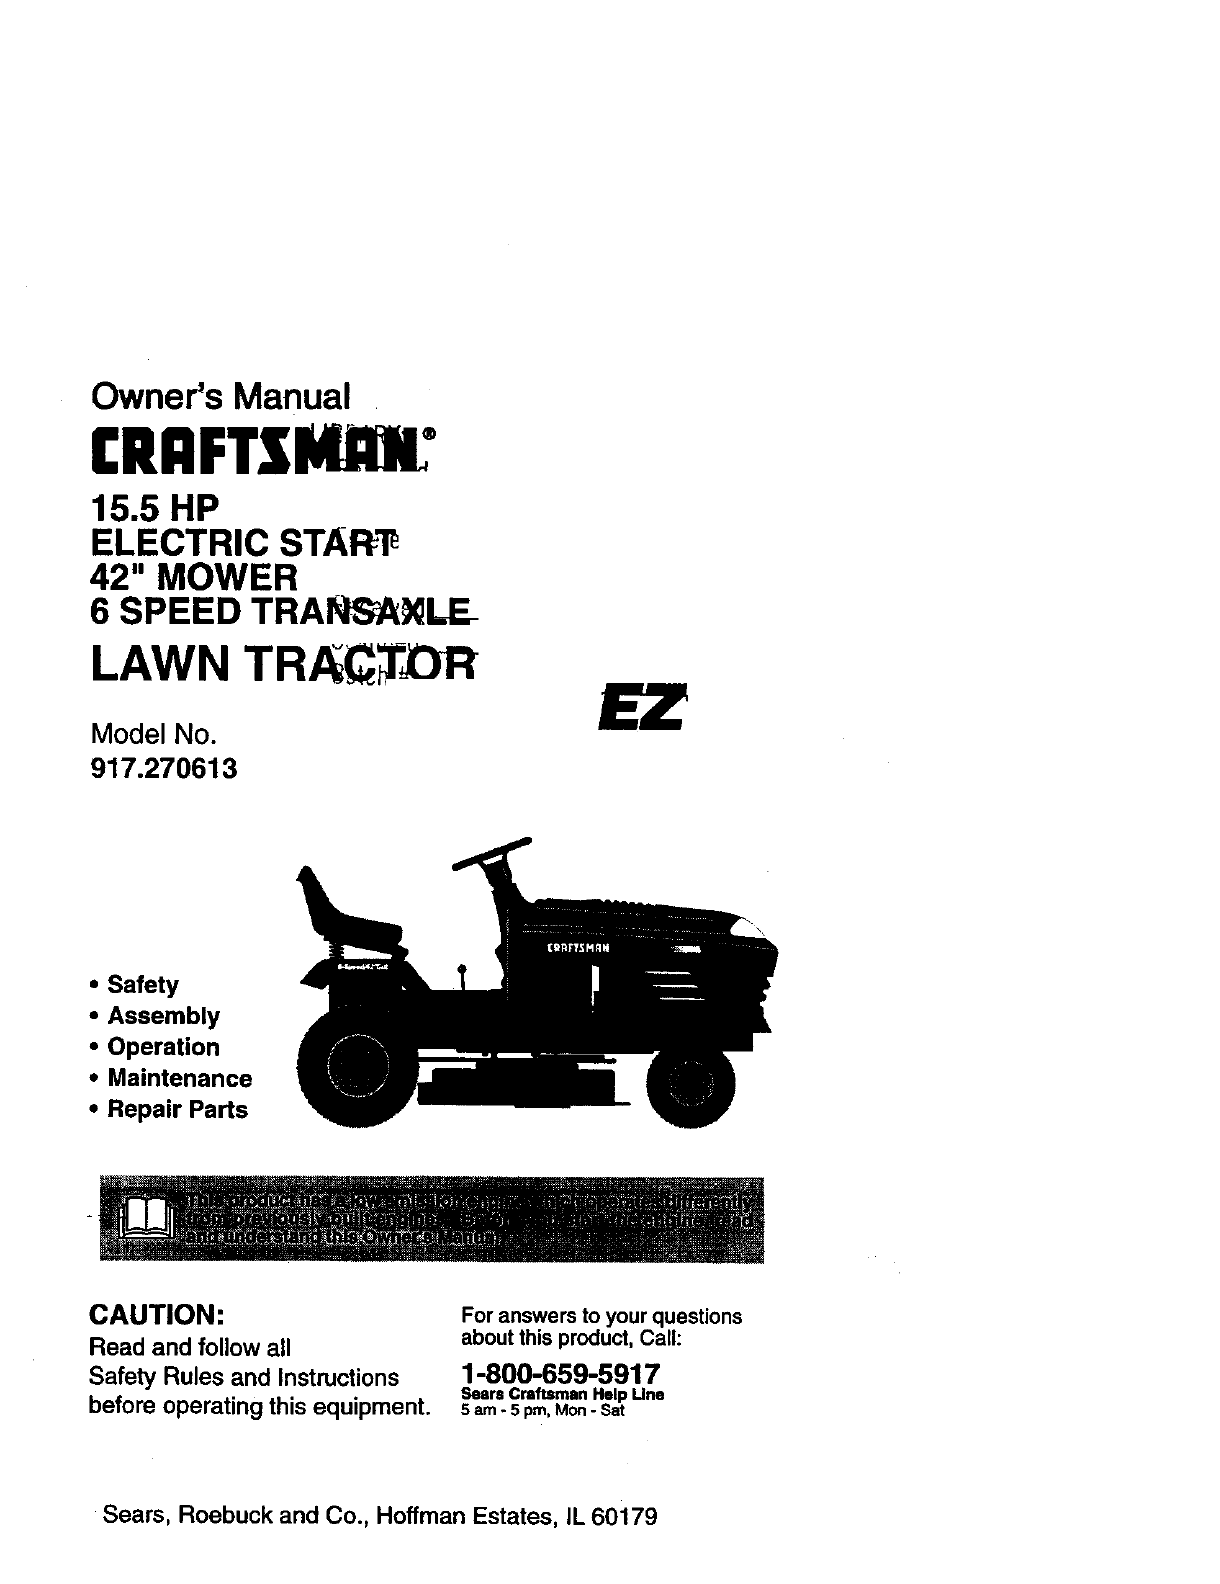 Craftsman 917270613 User Manual Tractor Manuals And Guides 98100085 15 5 Hp Wiring Diagram